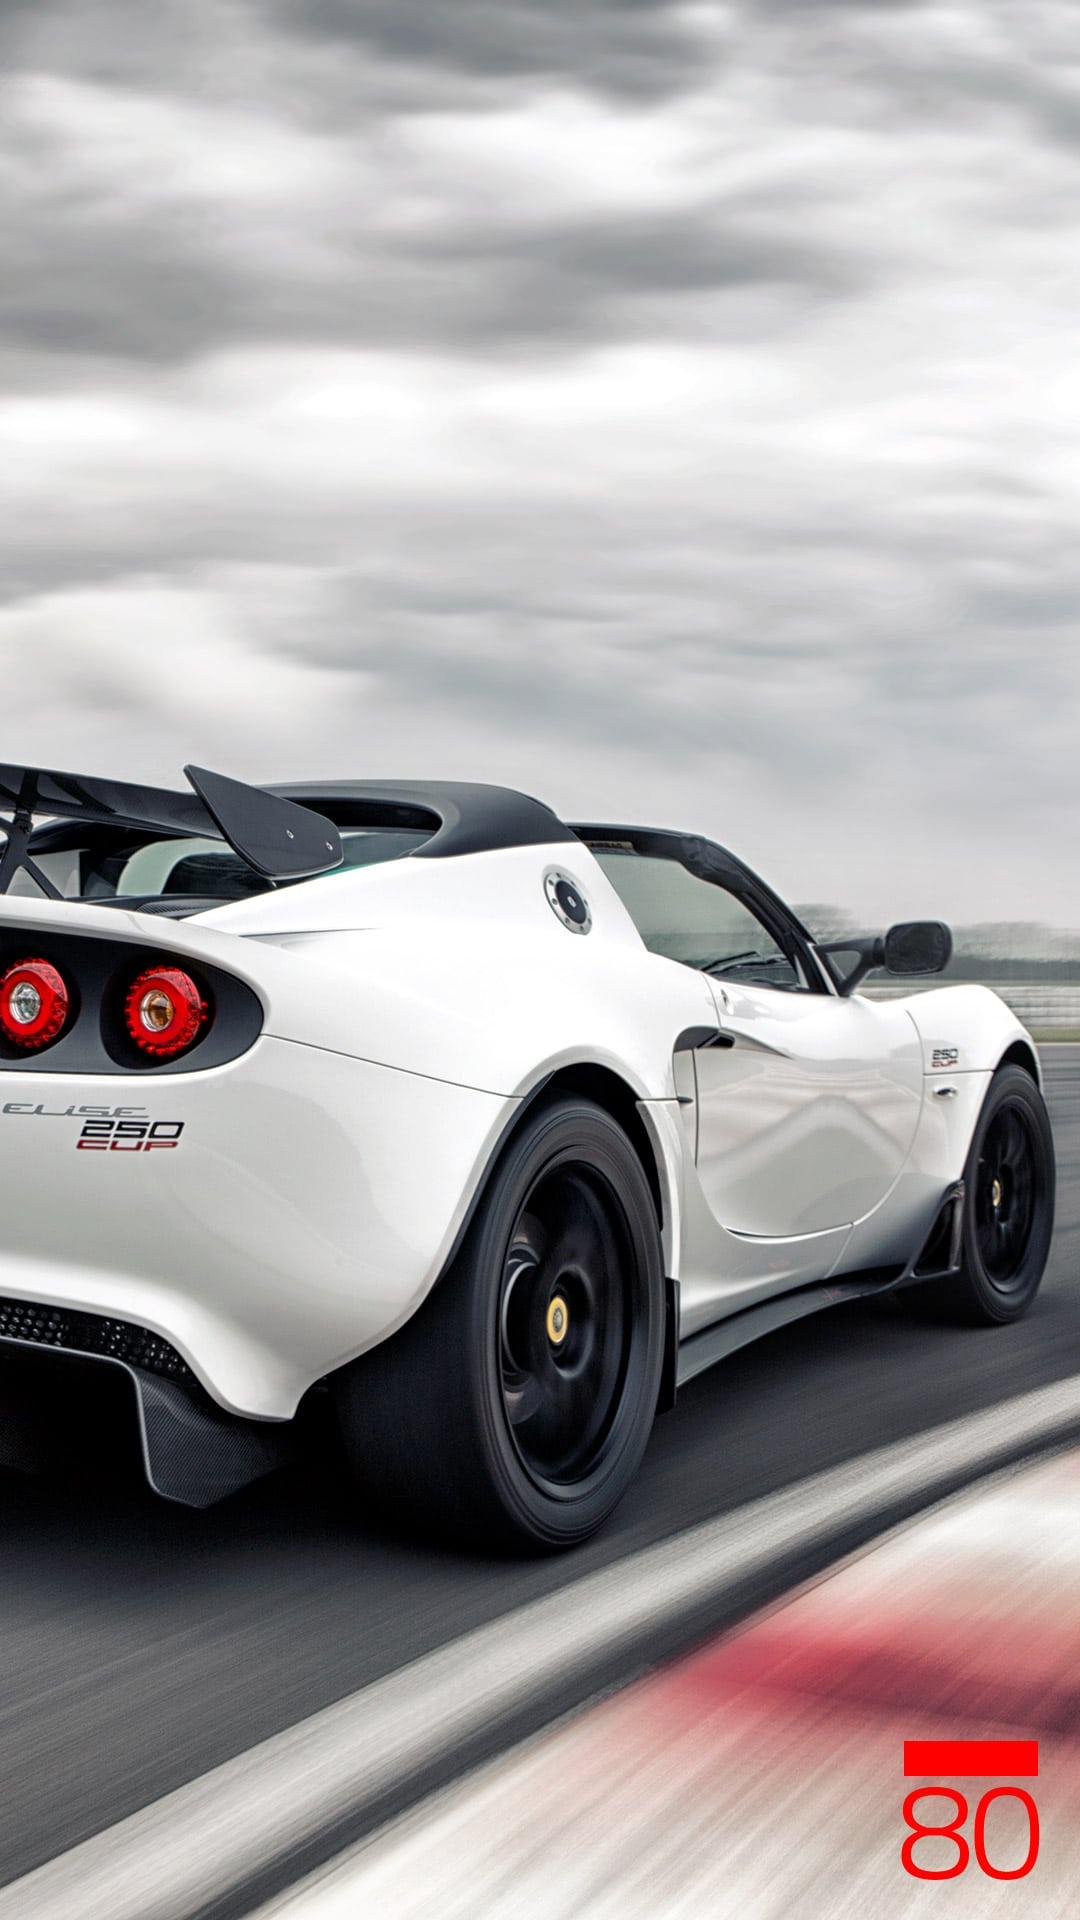 Lotus Elise Cup250 smartphone wallpaper